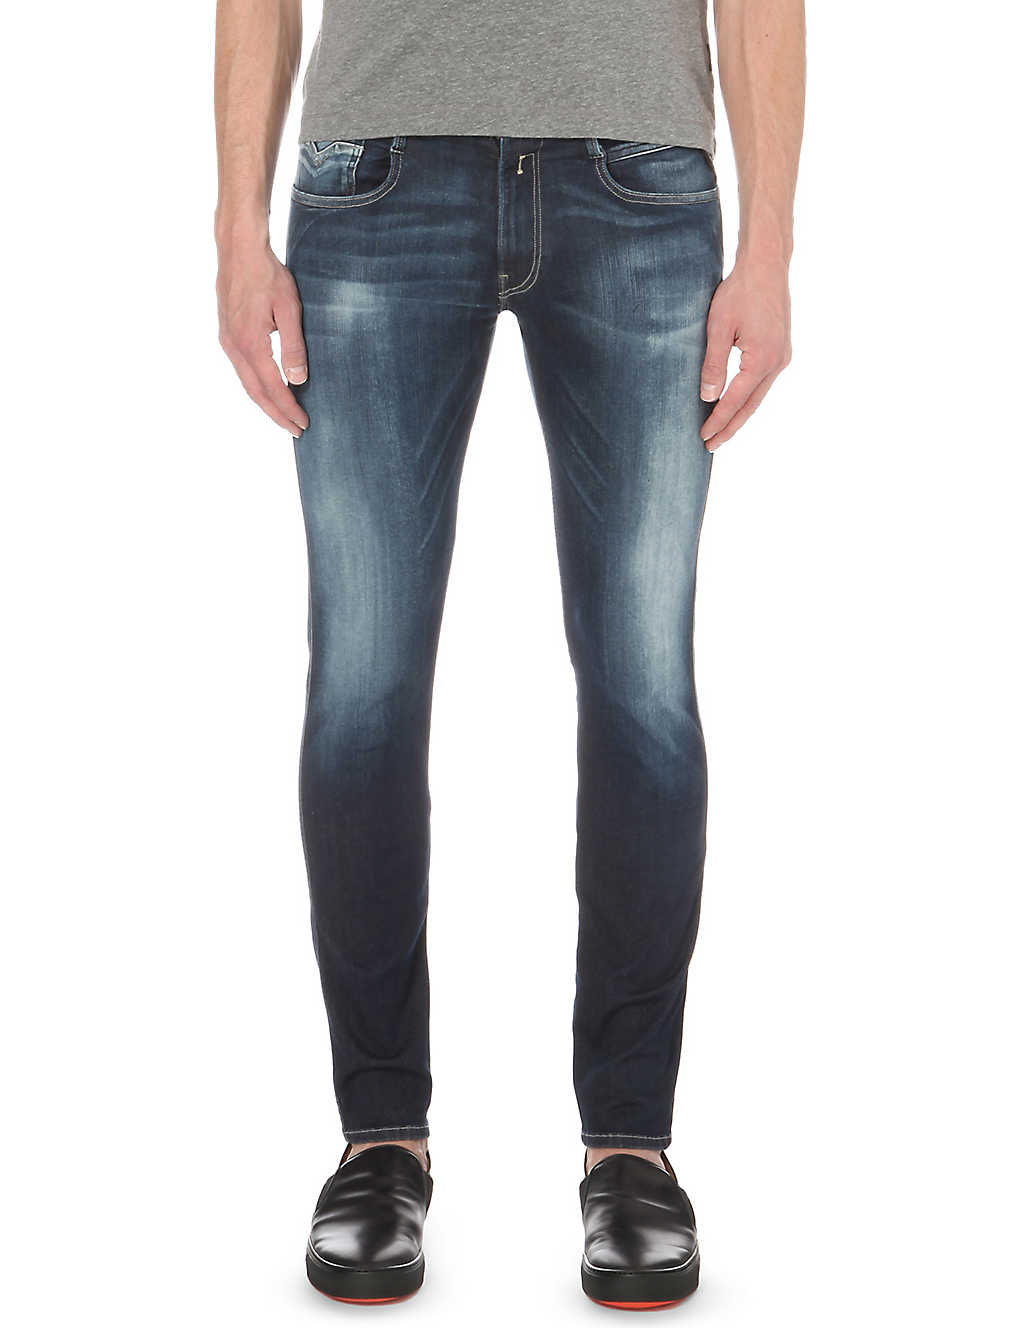 4d5c64572ca REPLAY - Anbass Hyperflex slim-fit skinny jeans | Selfridges.com